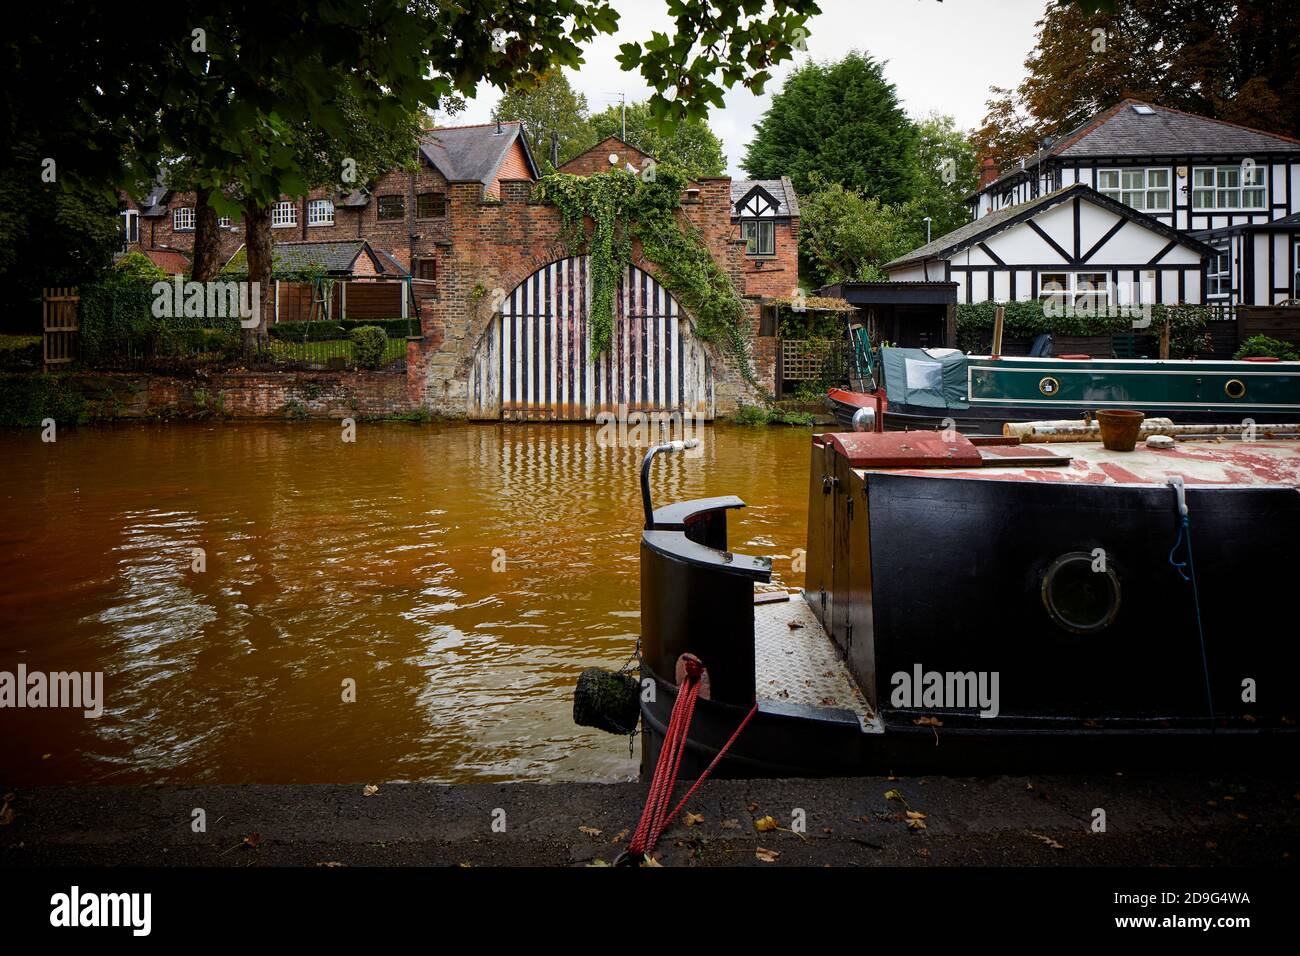 Built to accommodate the Duke of Bridgewater's canal barge grade II listed Old Boat House, Bridgewater Canal, Worsley Stock Photo